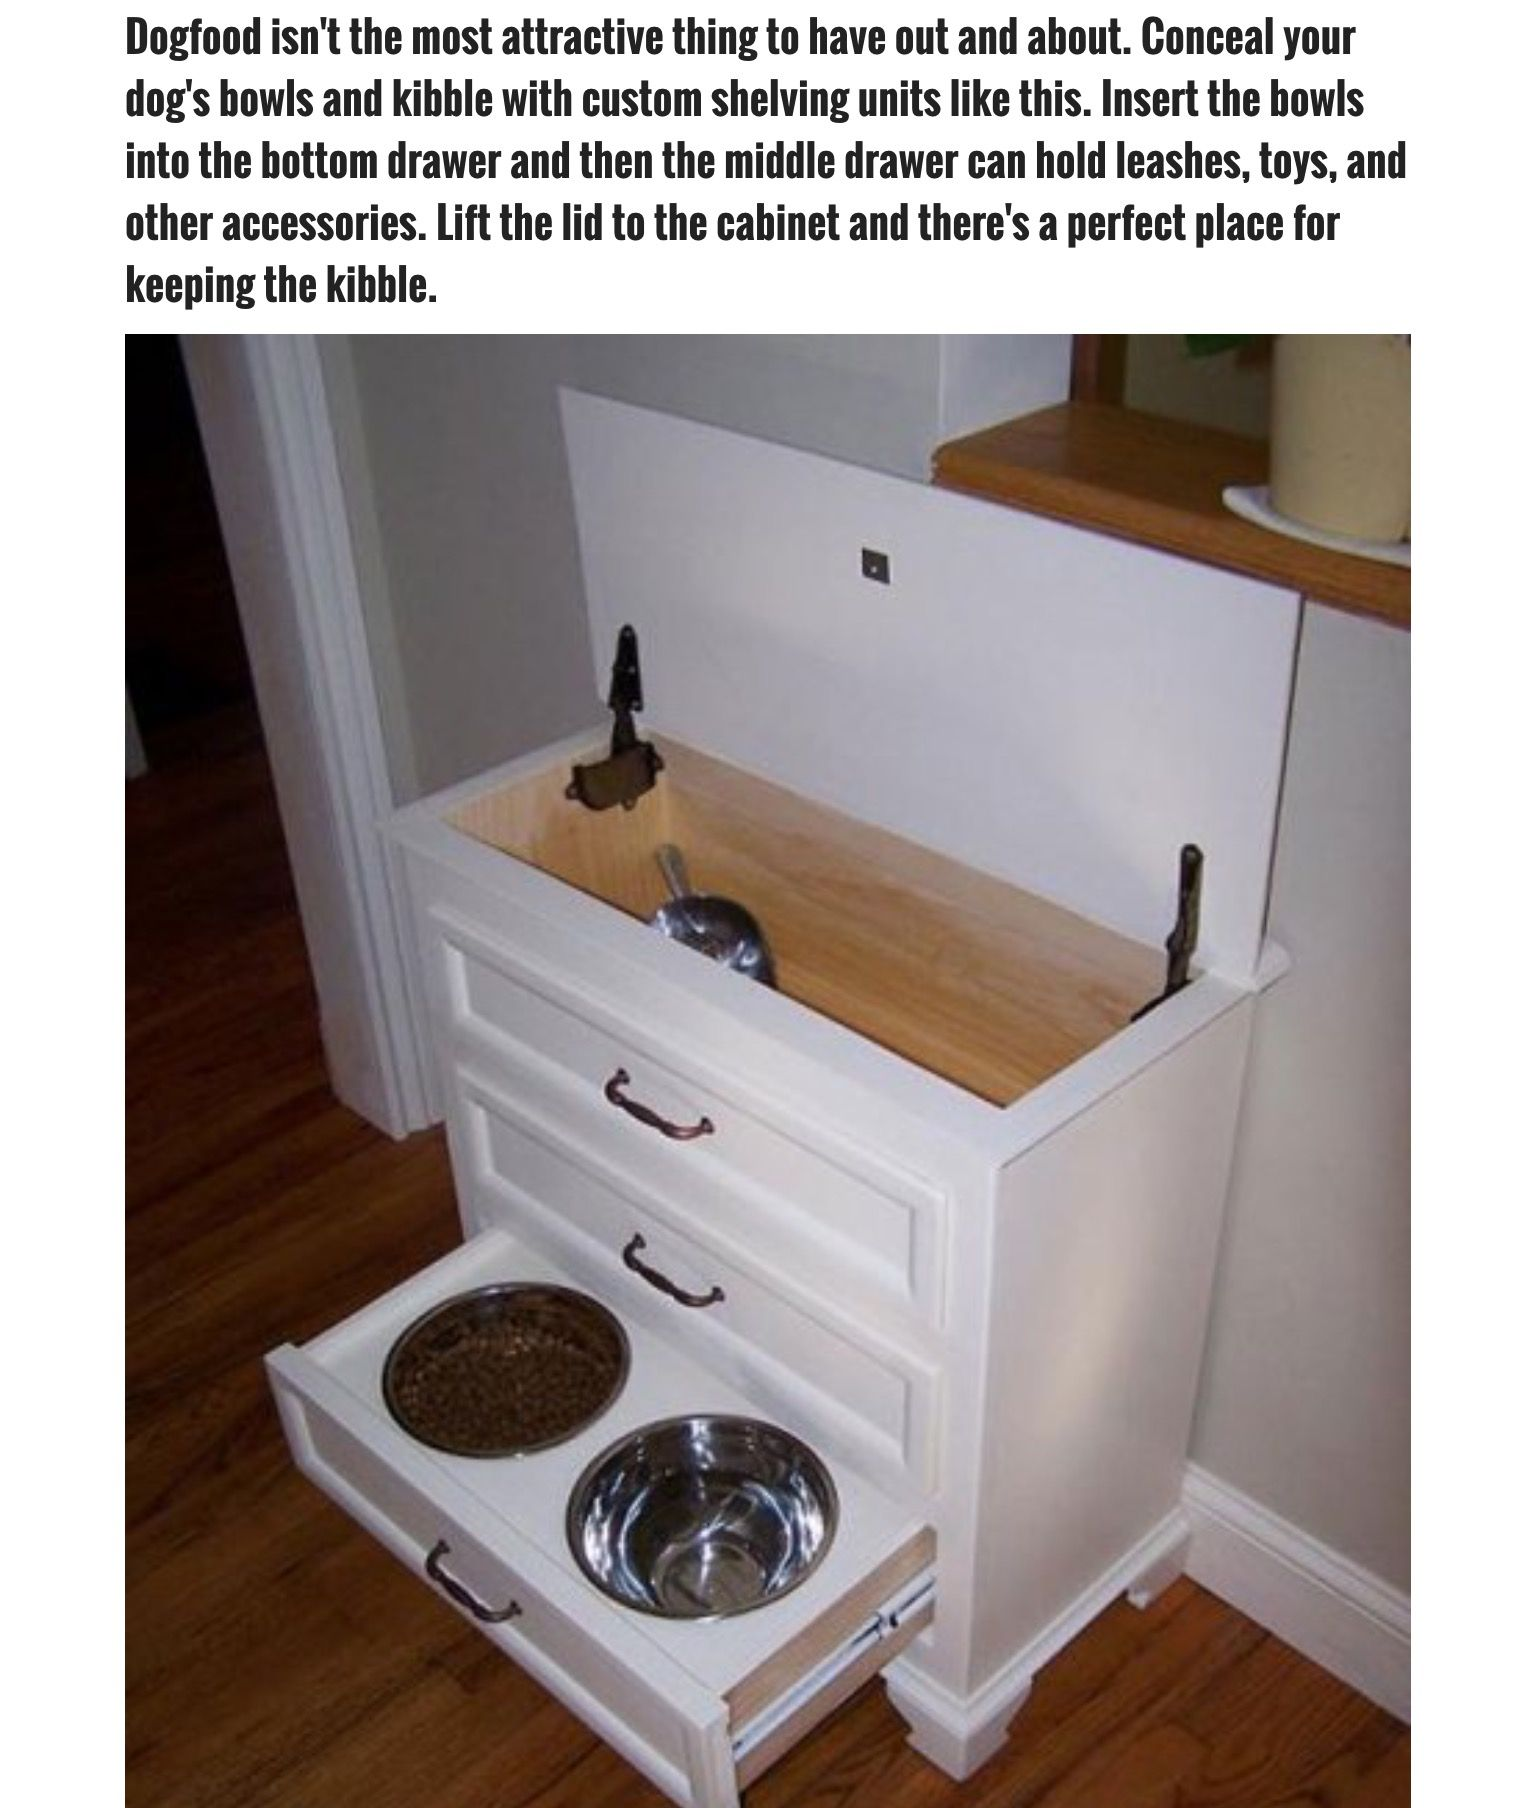 Pin by the dog on living with dogs pinterest remodeling ideas